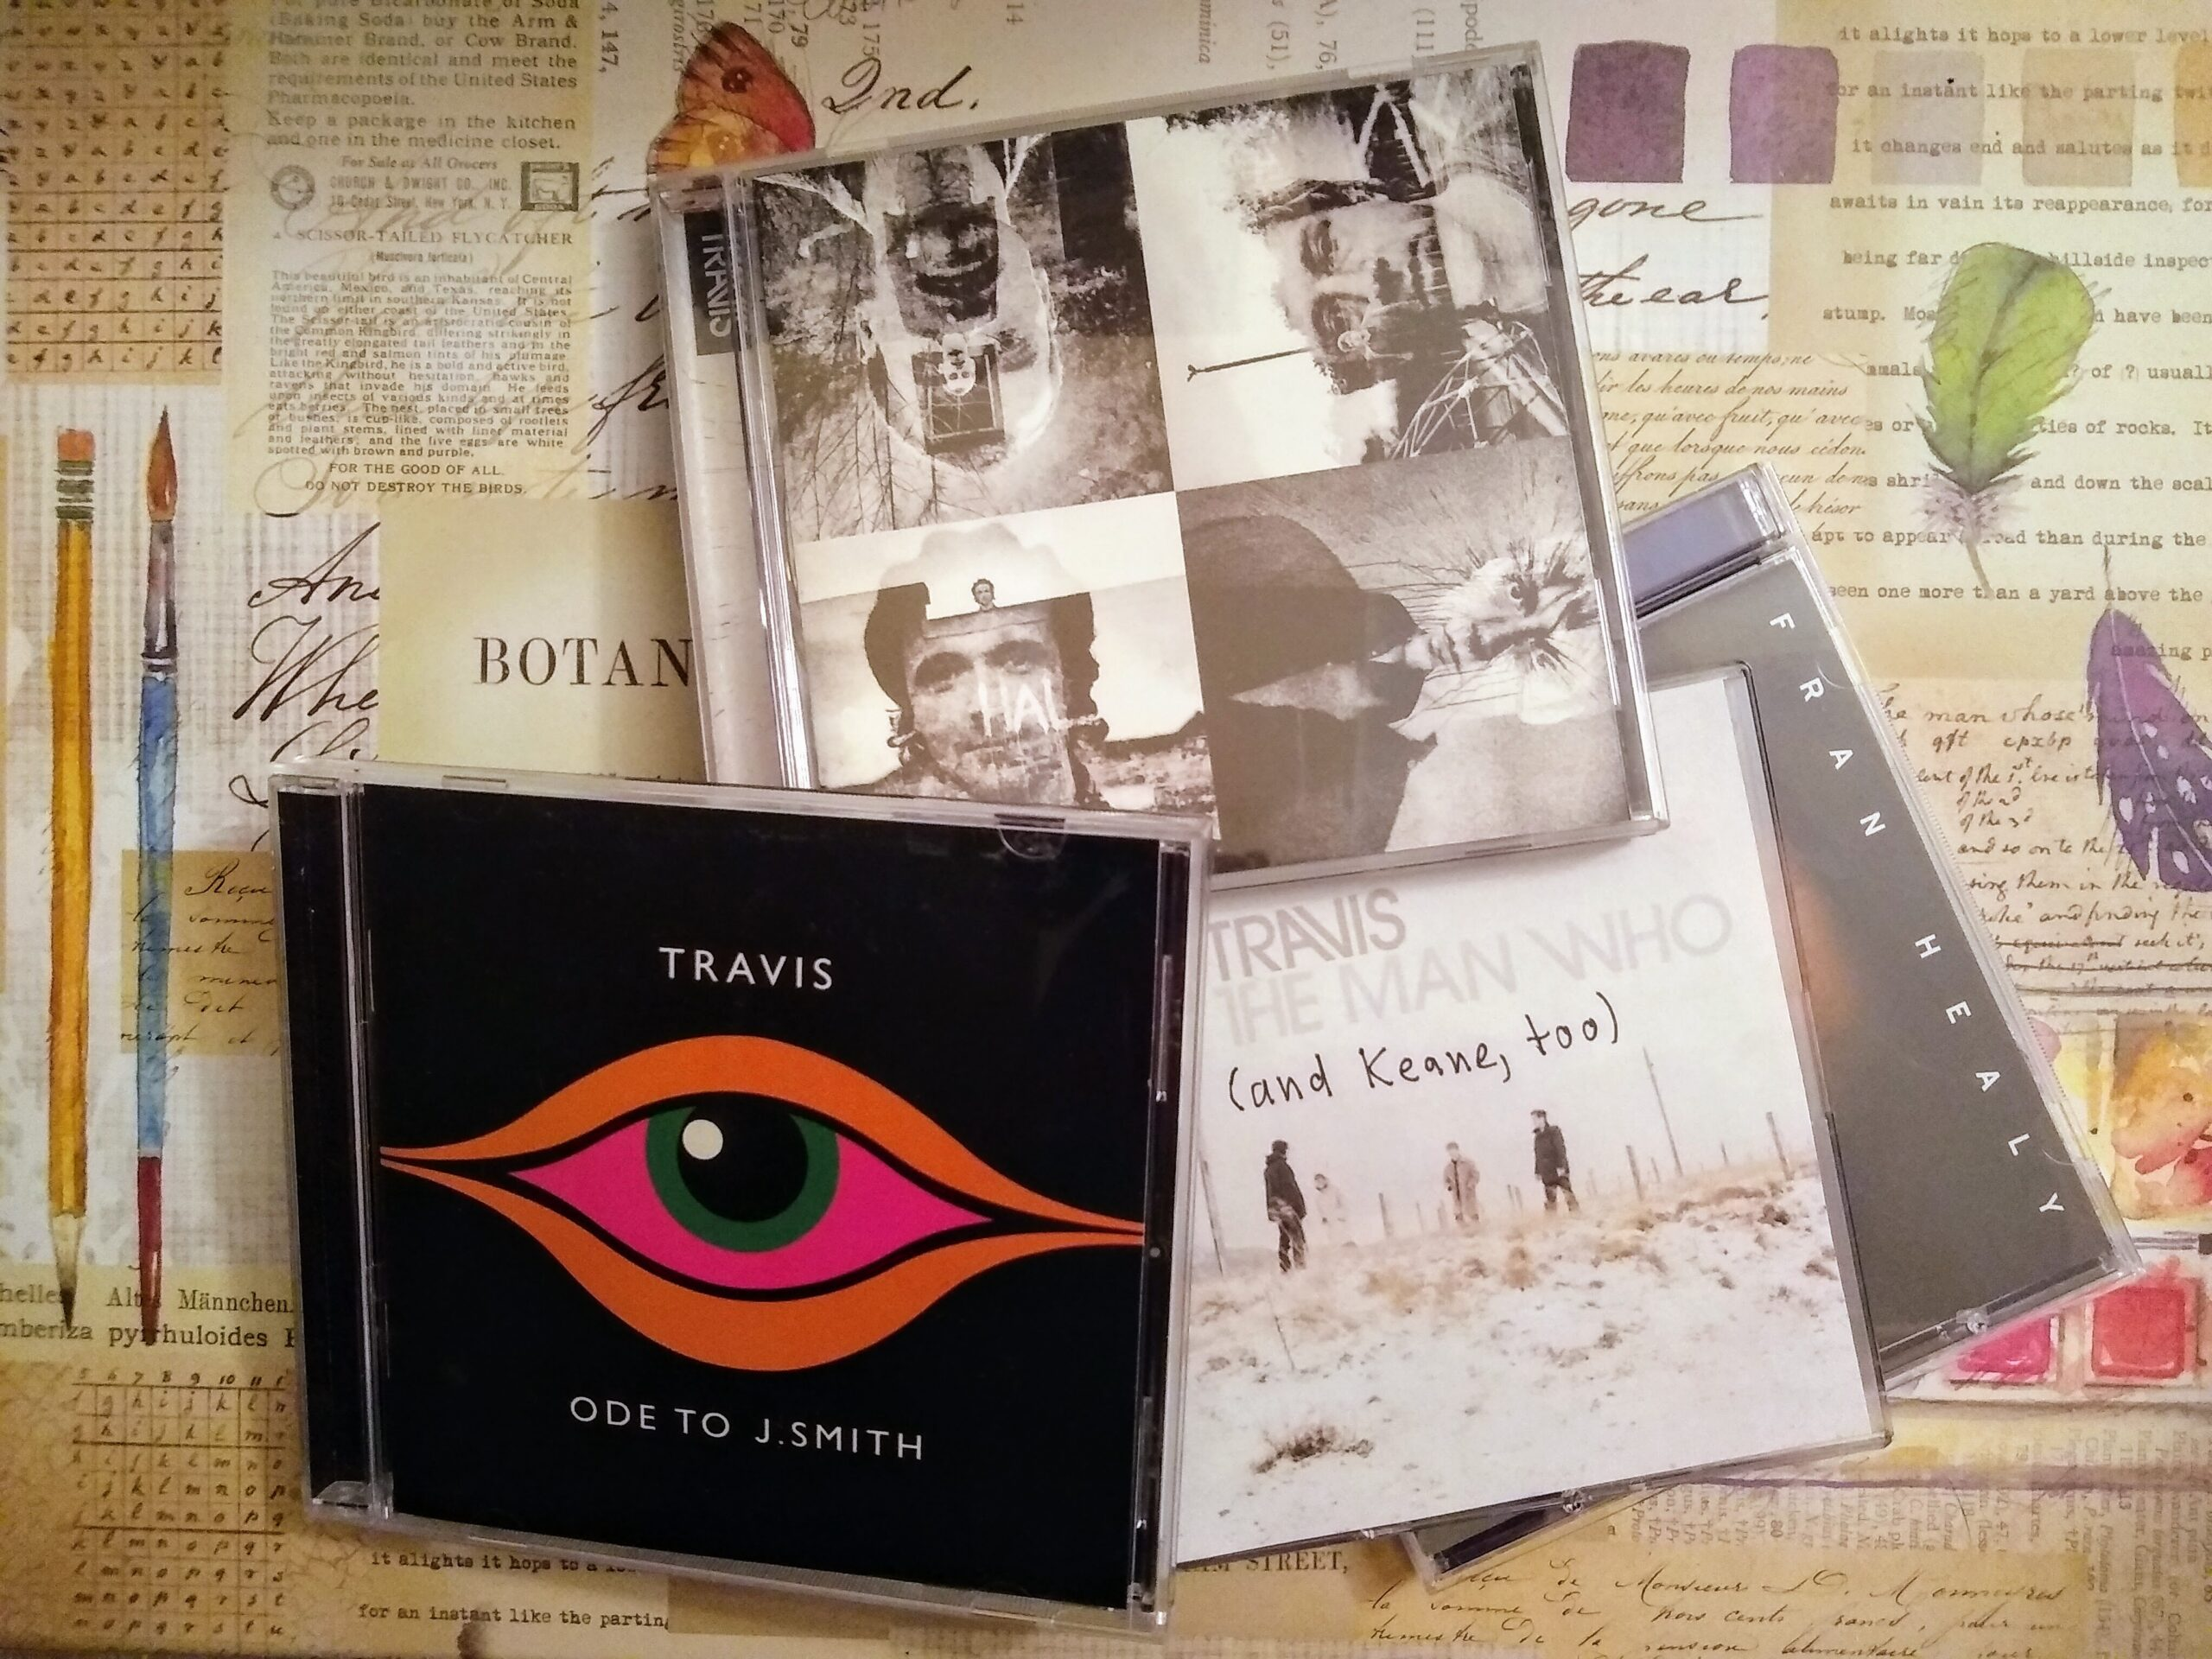 """Four music CD's scattered on top of a box with decorative printing. CD#1: a red eye between the words """"Travis"""" and """"Ode to J Smith"""". CD#2 four stylized black-and-white images of band members with text on edge """"Travis"""", a cover of a digital-download CD with misty figures in a landscape and text """"Travis The Man Who"""", CD#4 only text visible """"Fran Healy"""""""